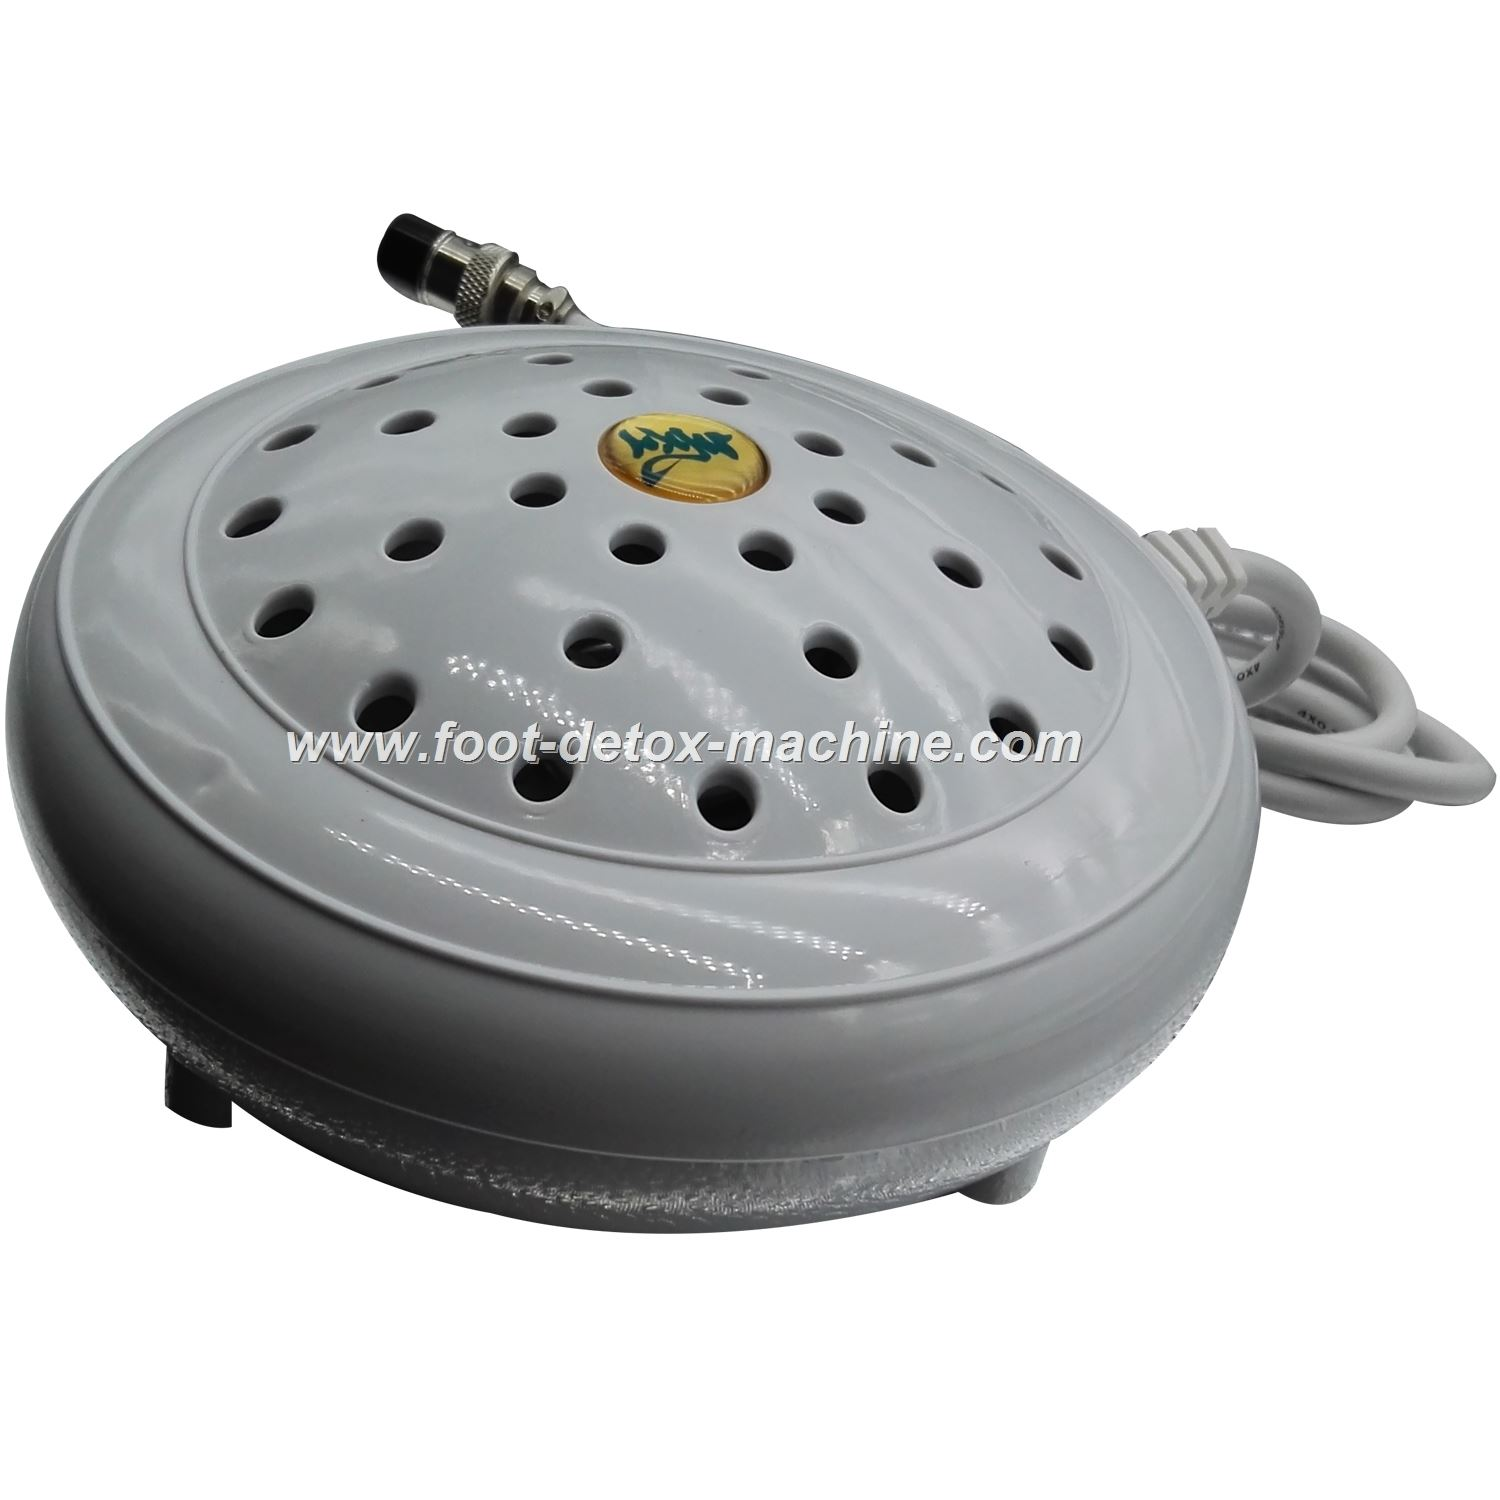 ion cleansing foot detox machine array